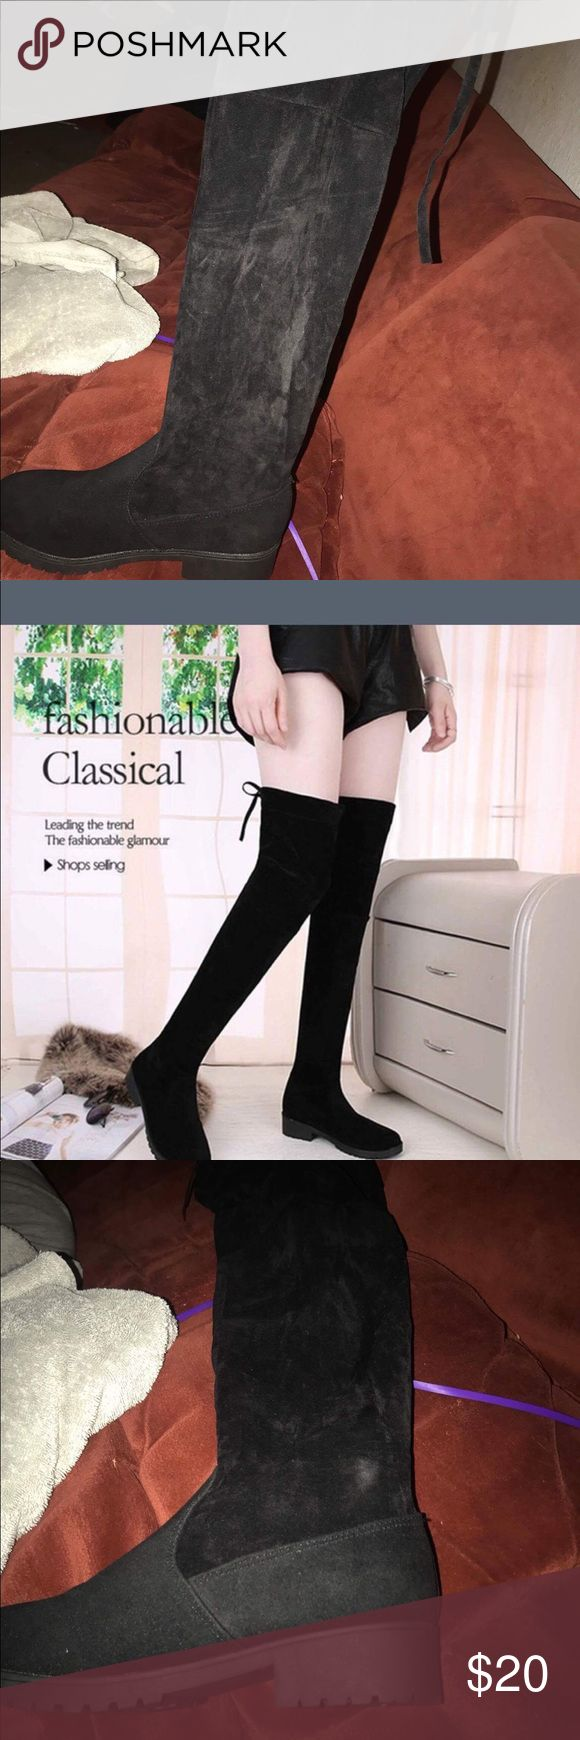 All black knee high boots All black knee high boots, size 9 but fits like an 8 brand new never worn Glamour & Co. Shoes Winter & Rain Boots